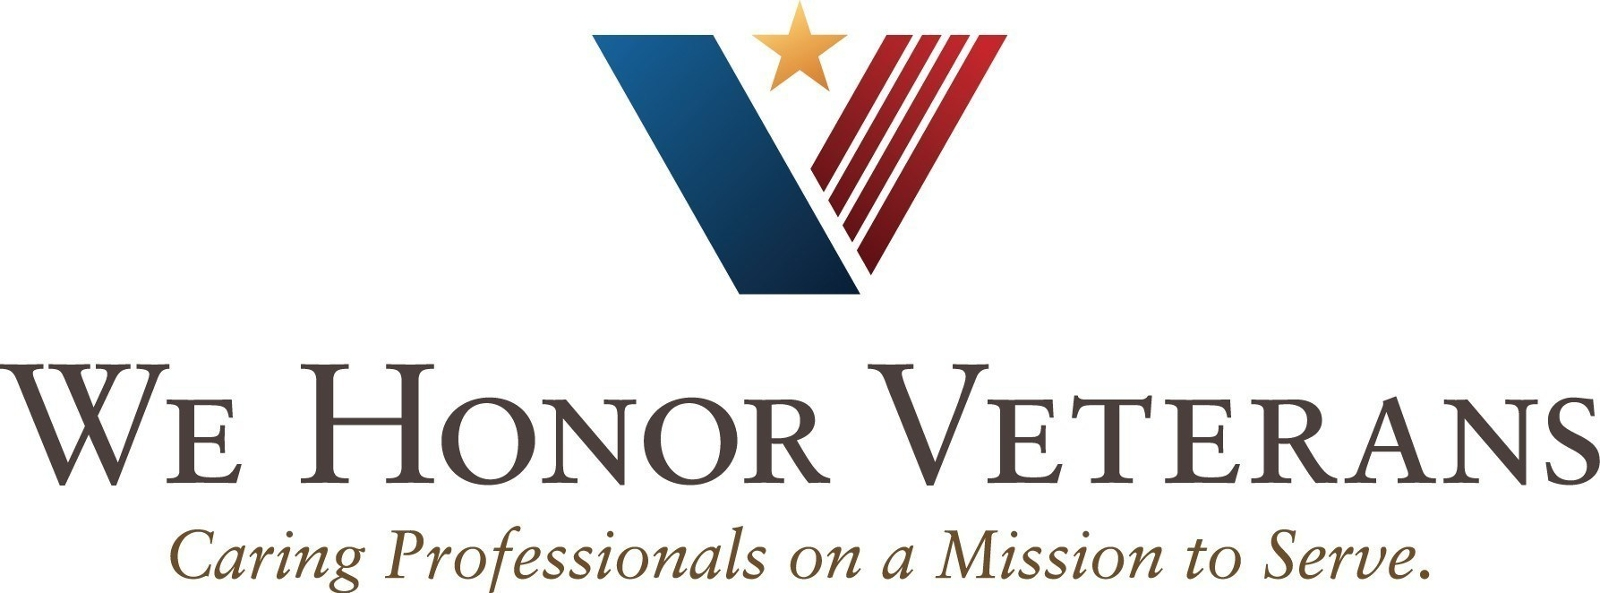 East Valley Hospice is also privileged to honor our patients who have served in the United States Armed Forces. Through our We Honor Veterans Program, East Valley Hospice partners with the Phoenix VA and NHPCO to provide care for the unique needs of our nations veterans.  Find out more here.